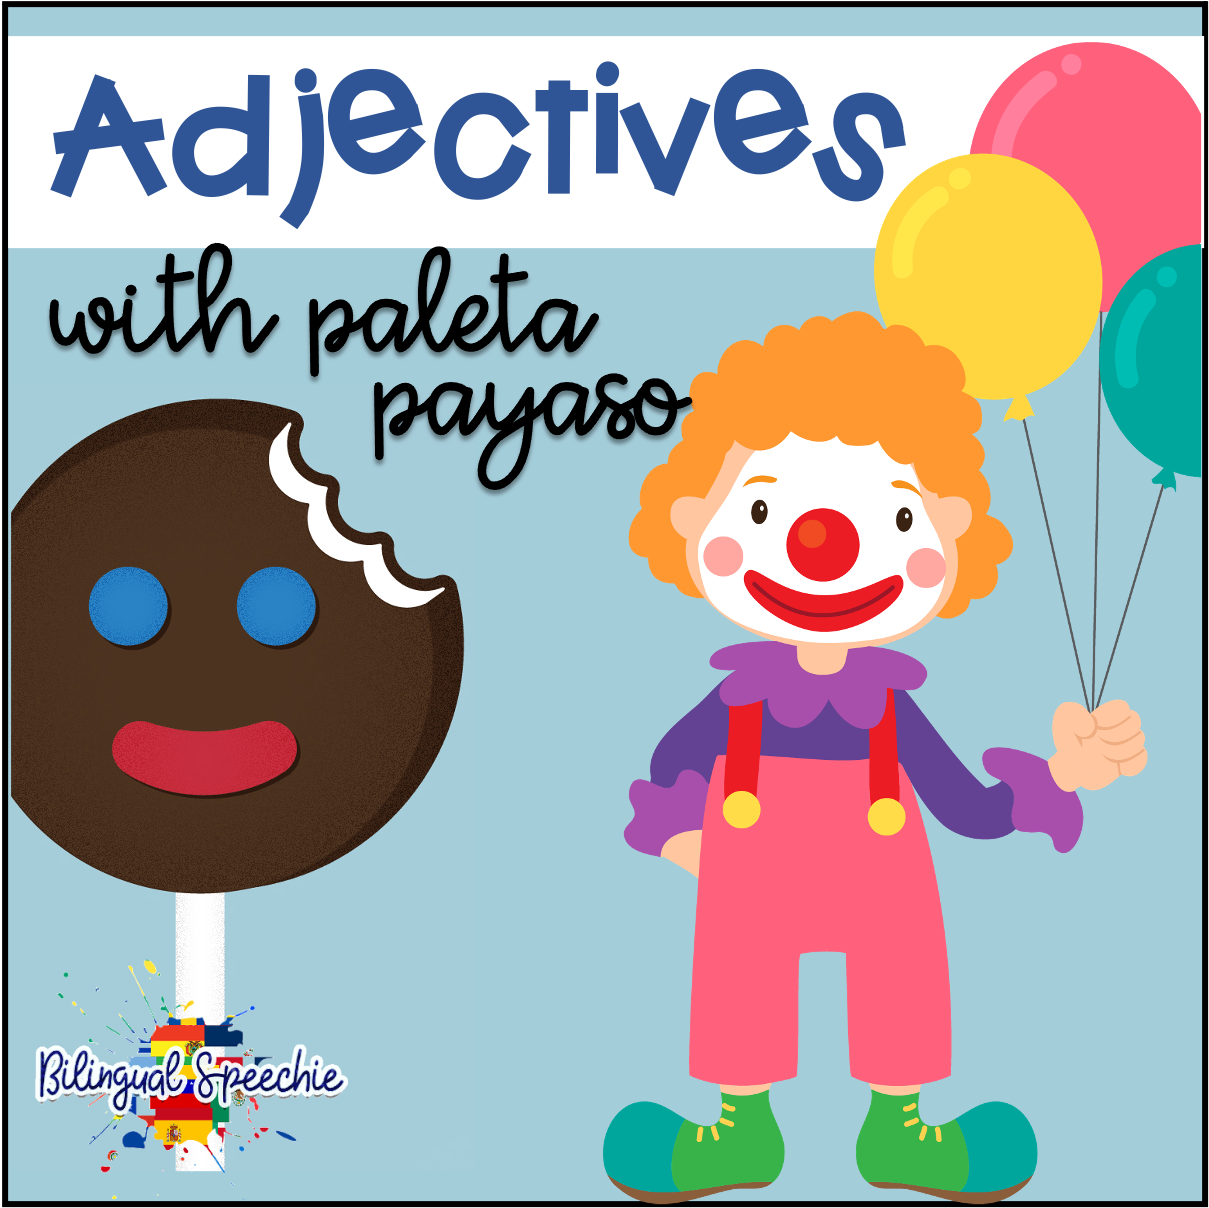 Spanish | Adjectives with Paleta Payaso!